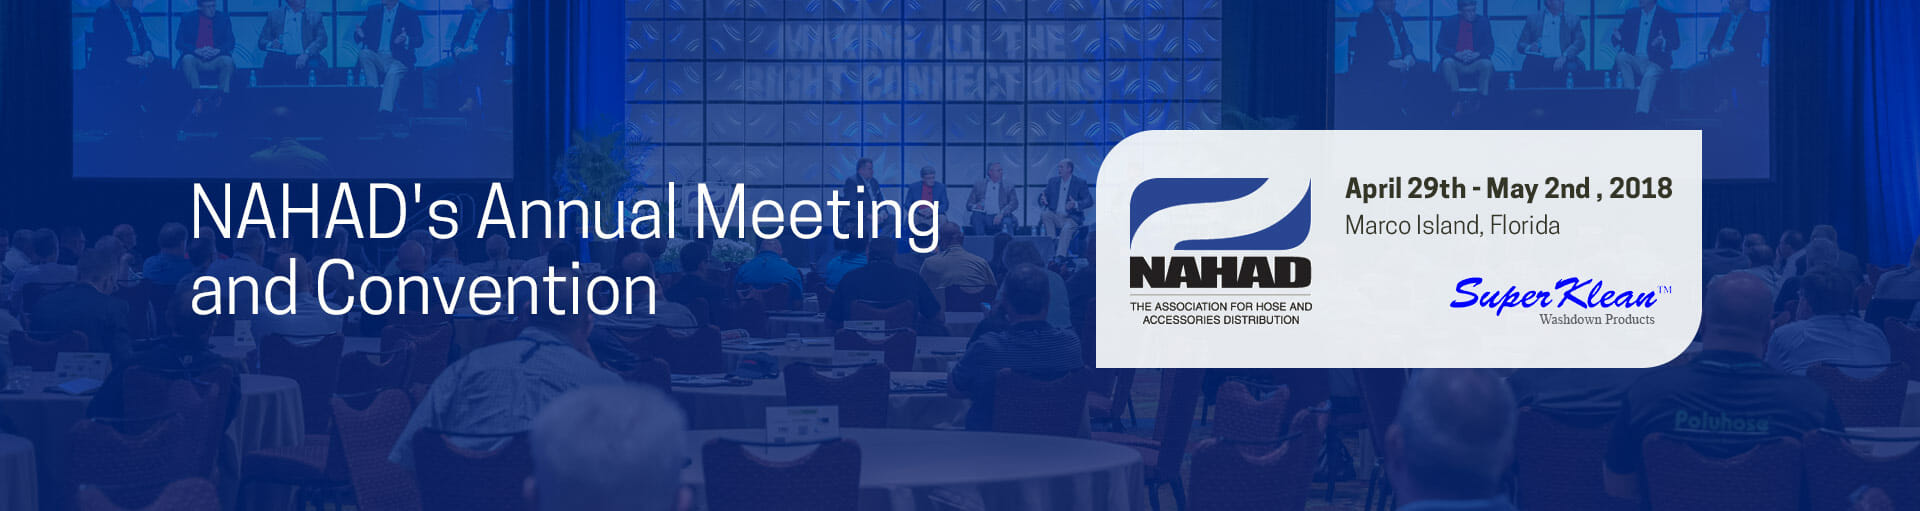 NAHAD's Annual Meeting and Convention